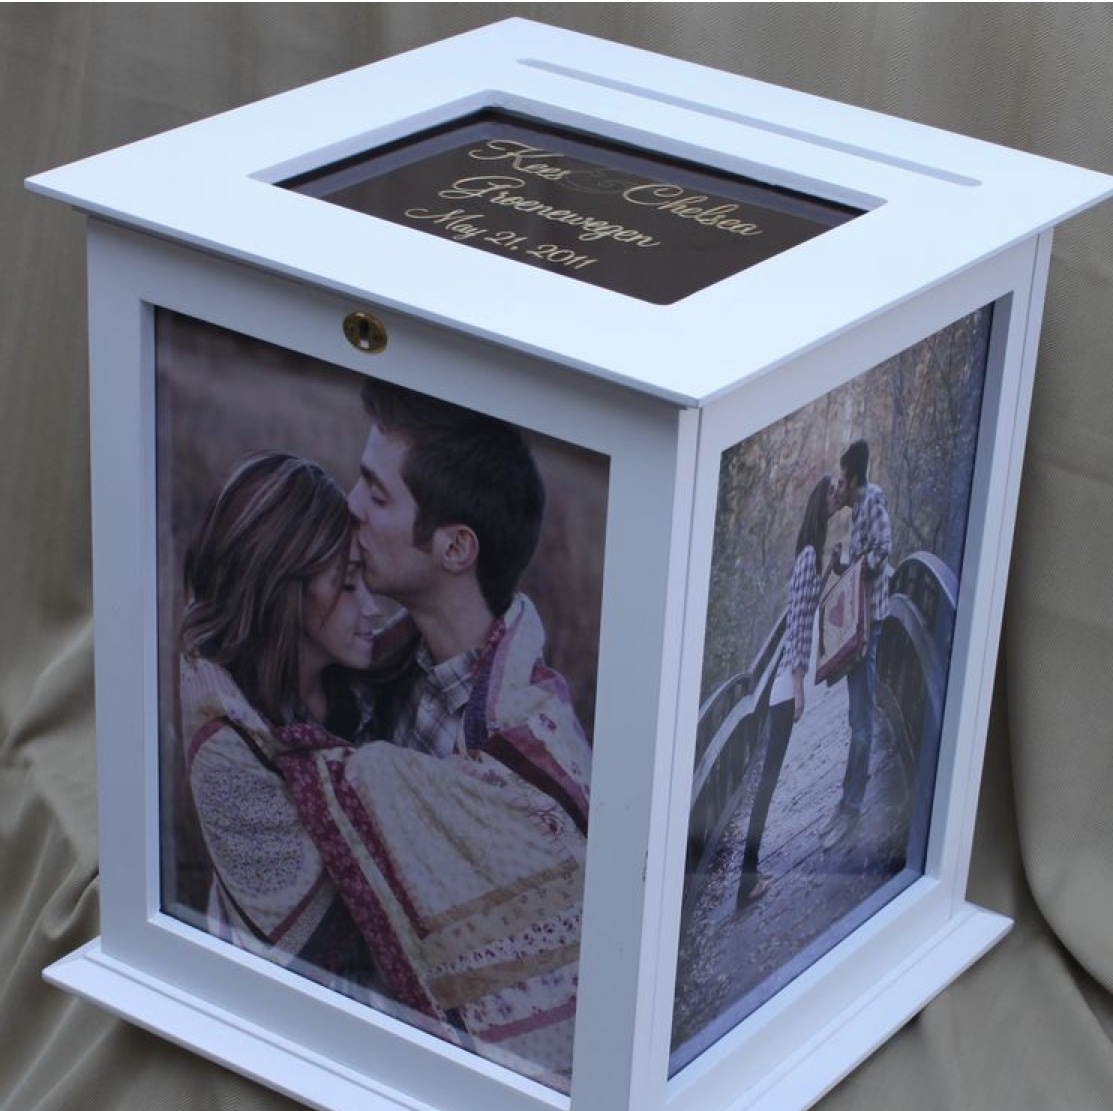 card display box - I personally love this idea for wedding cards (usually the prettiest in my opinion!) It's a great way to display those meaningful notes and share them with your family and friends. Etsy has plenty of beautiful display boxes like the one shown here.